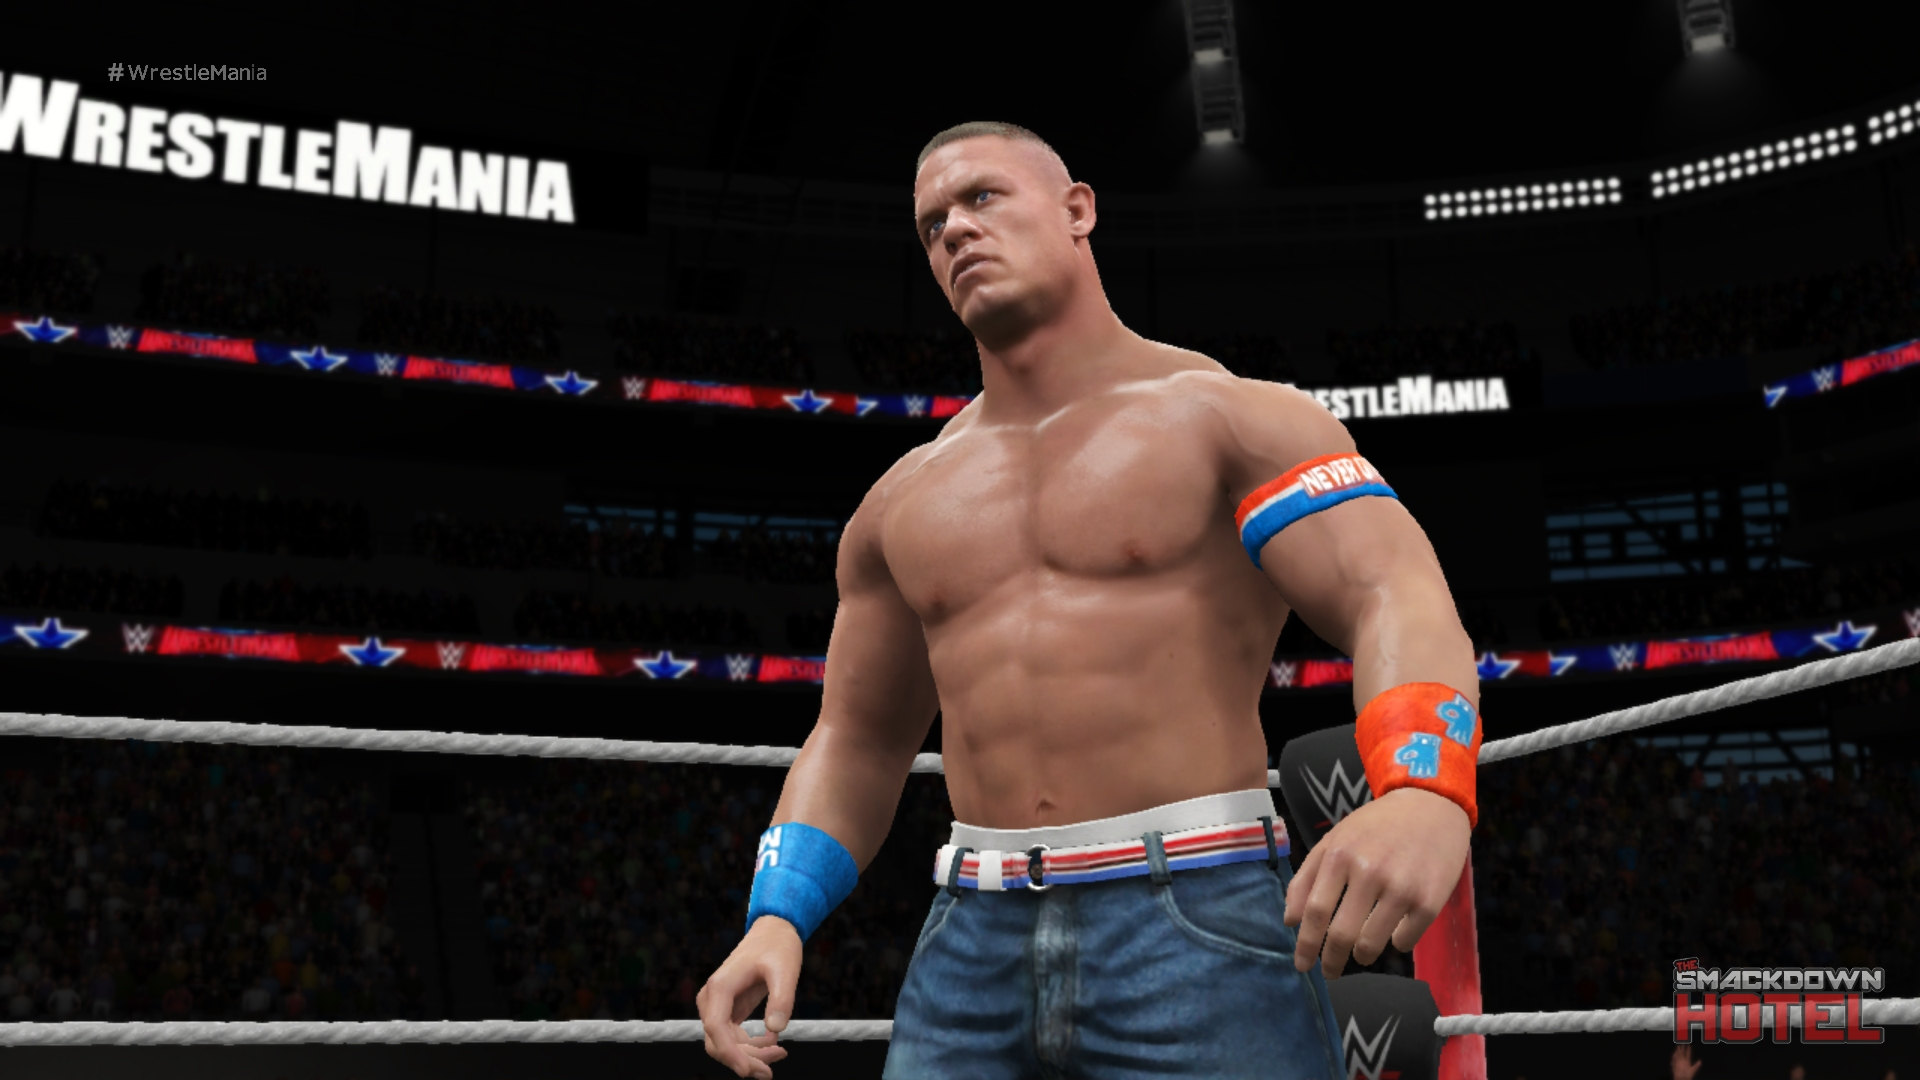 Wwe 2K17 Wallpapers High Quality